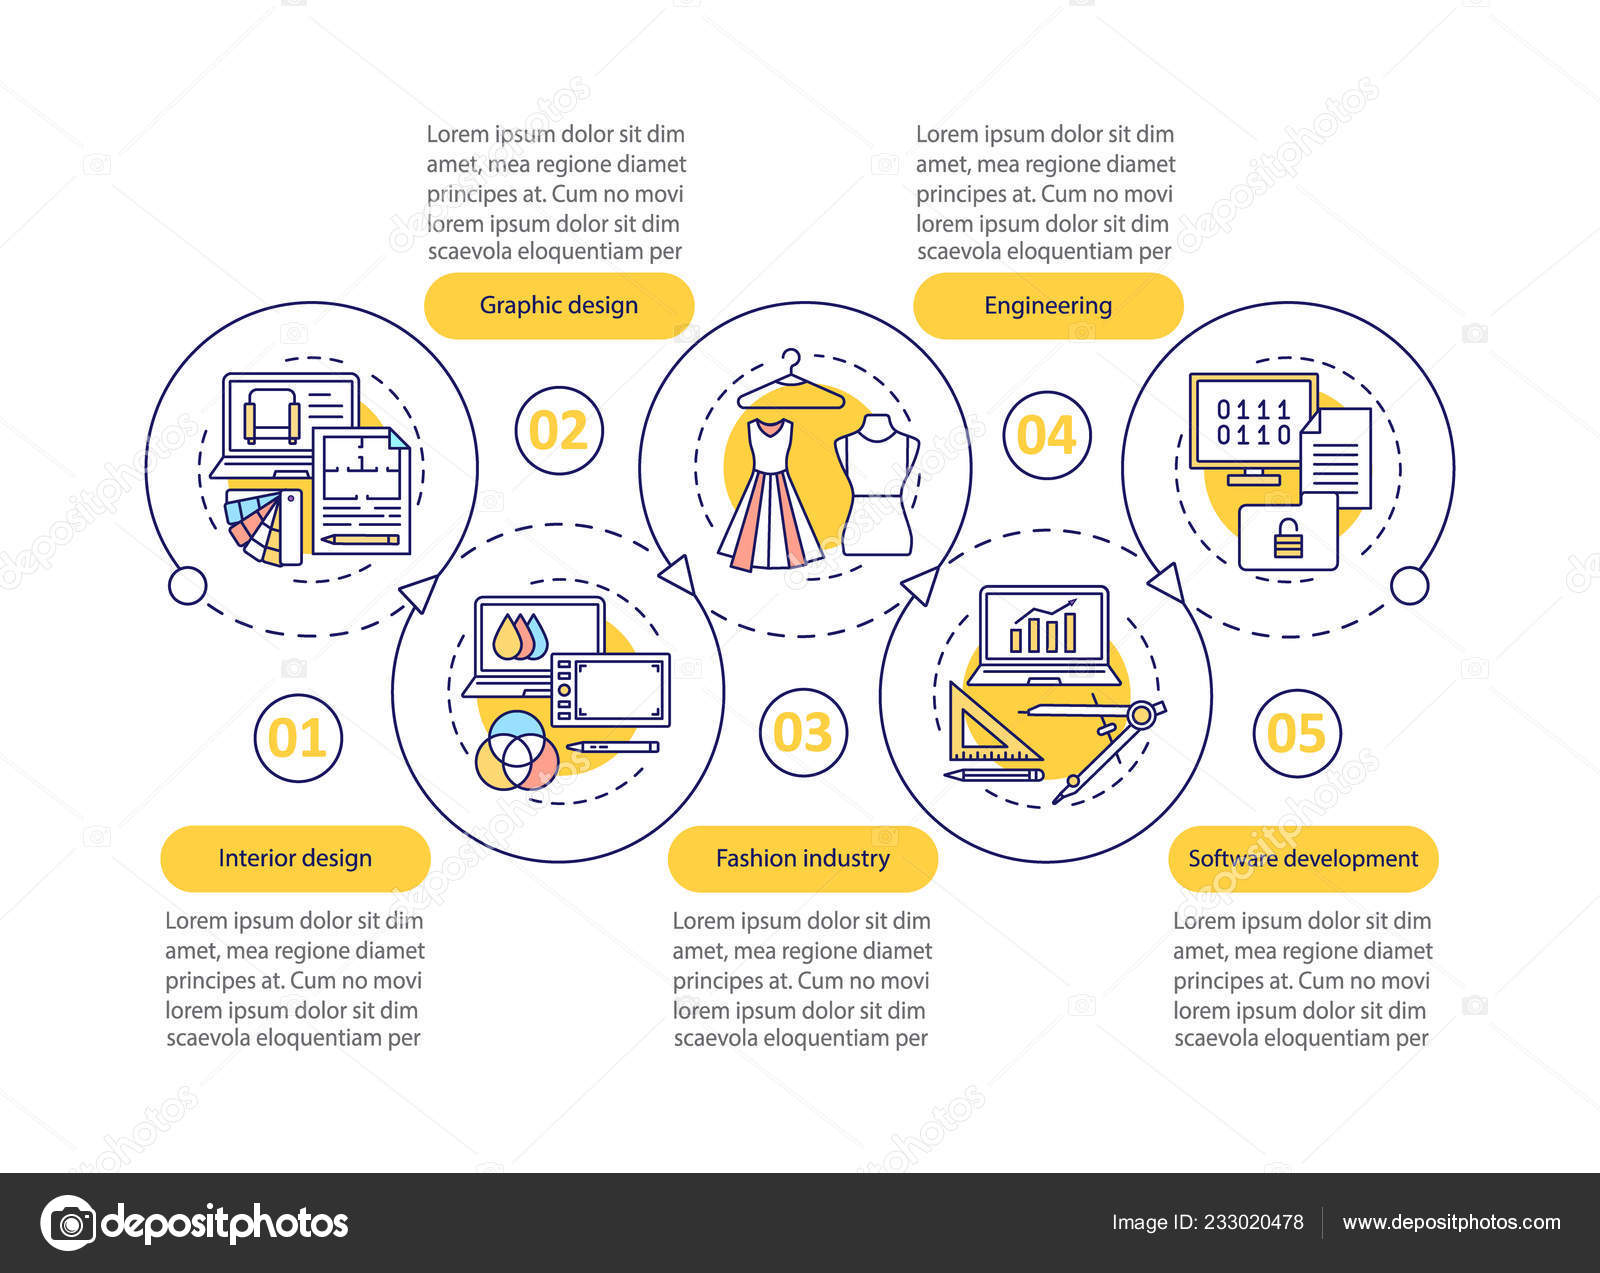 Design Industry Vector Infographic Template Fashion Graphics Software Development Engineering Stock Vector C Bsd 233020478